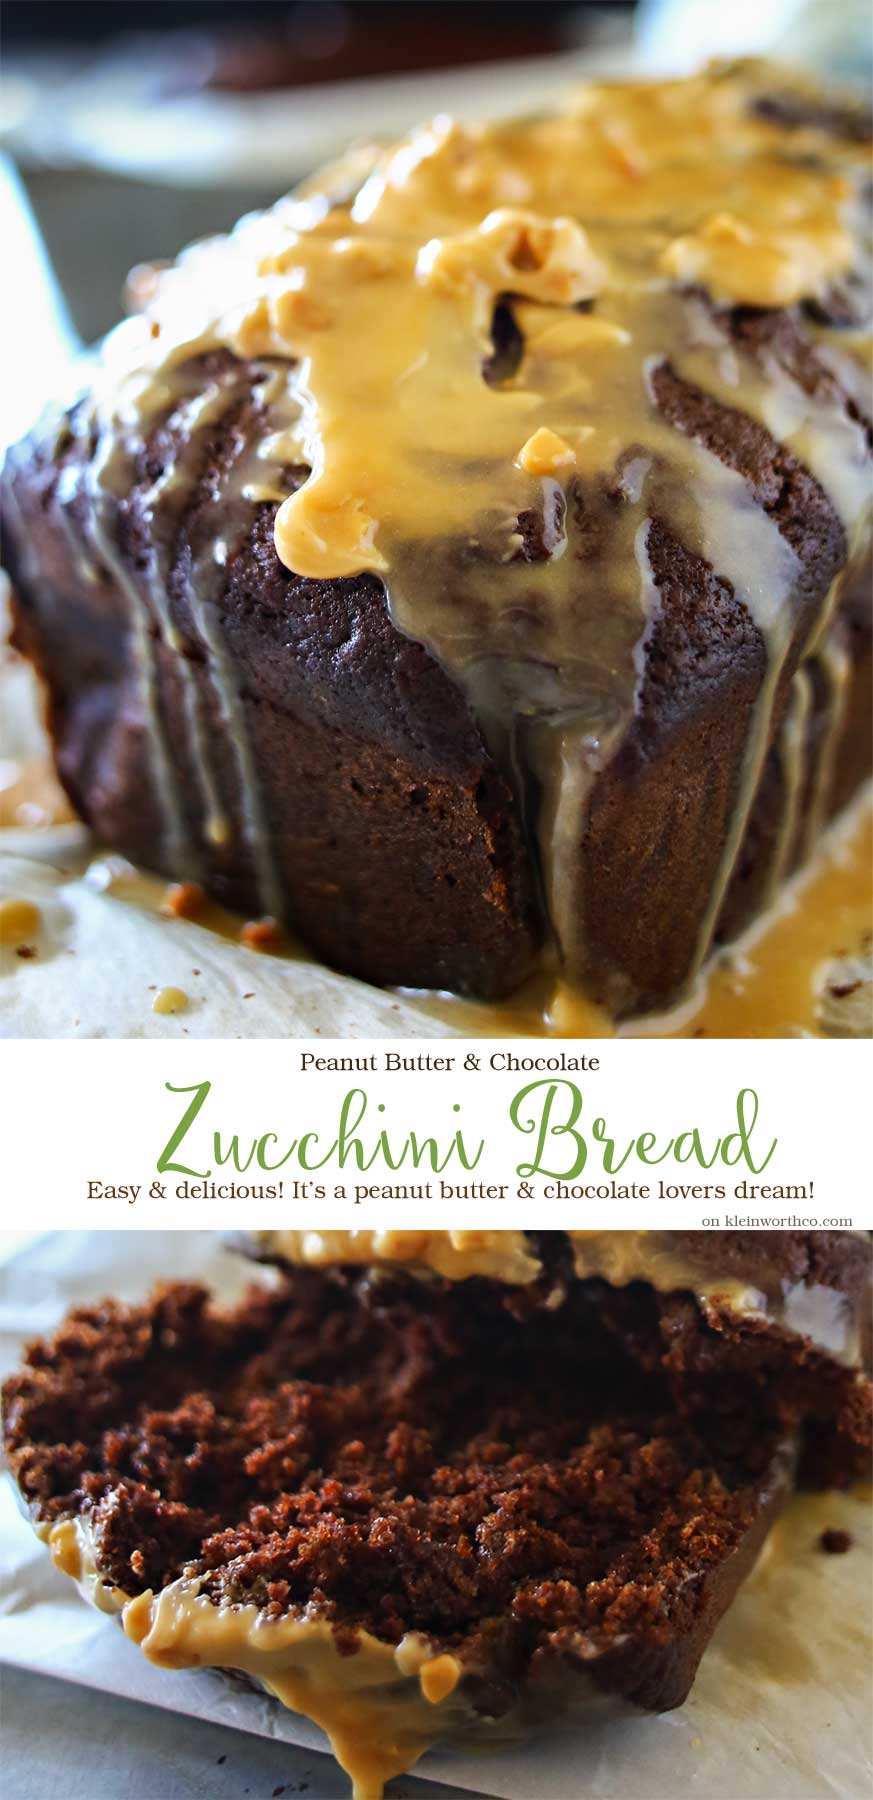 Peanut Butter Chocolate Zucchini Bread is an easy zucchini bread recipe that is absolutely scrumptious.